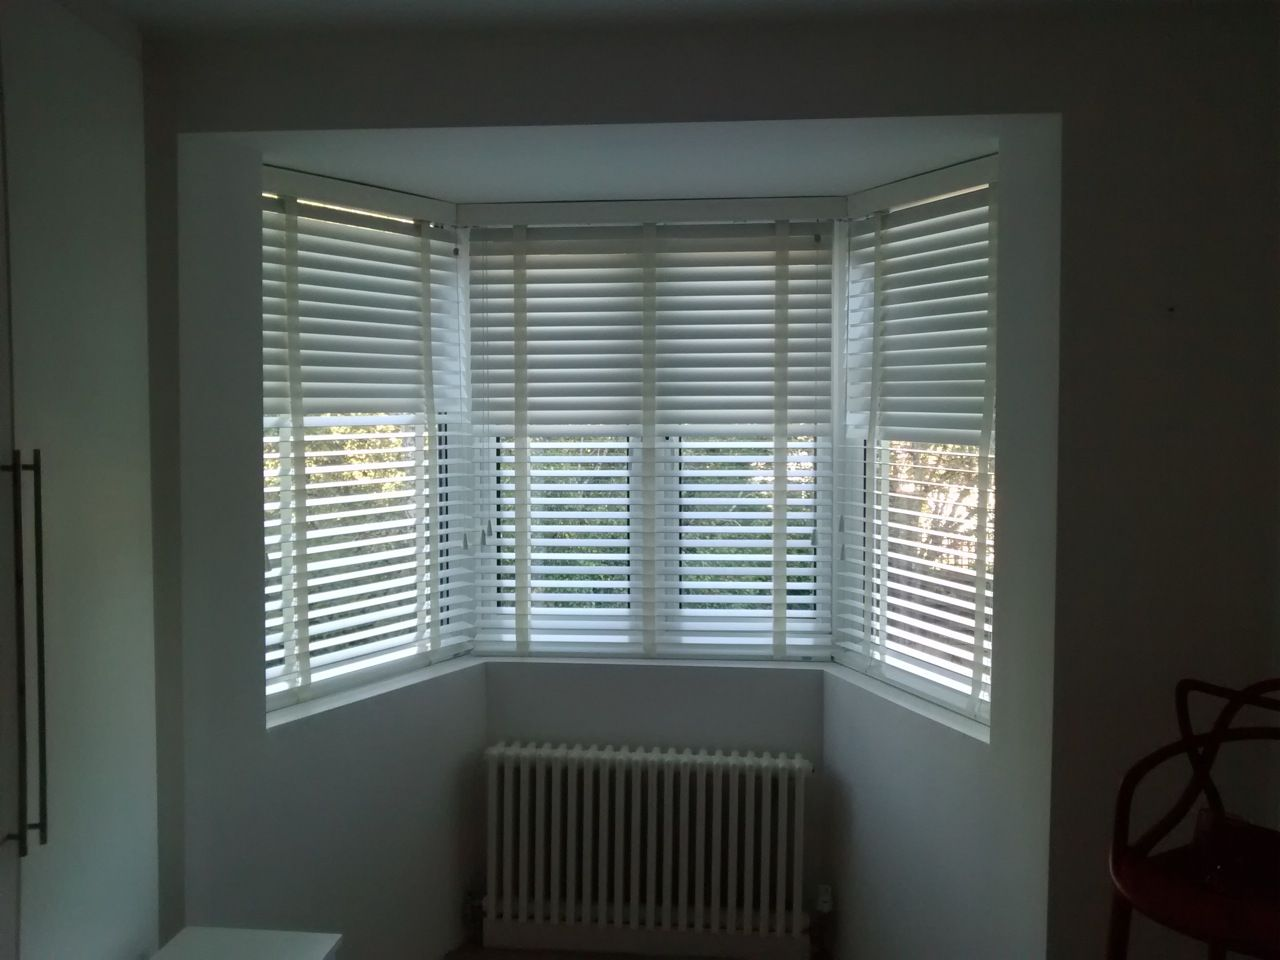 estate grey wood venetian blinds bay window blinds brixton chalk venetians with matching tapes in bay window http www theblindshop